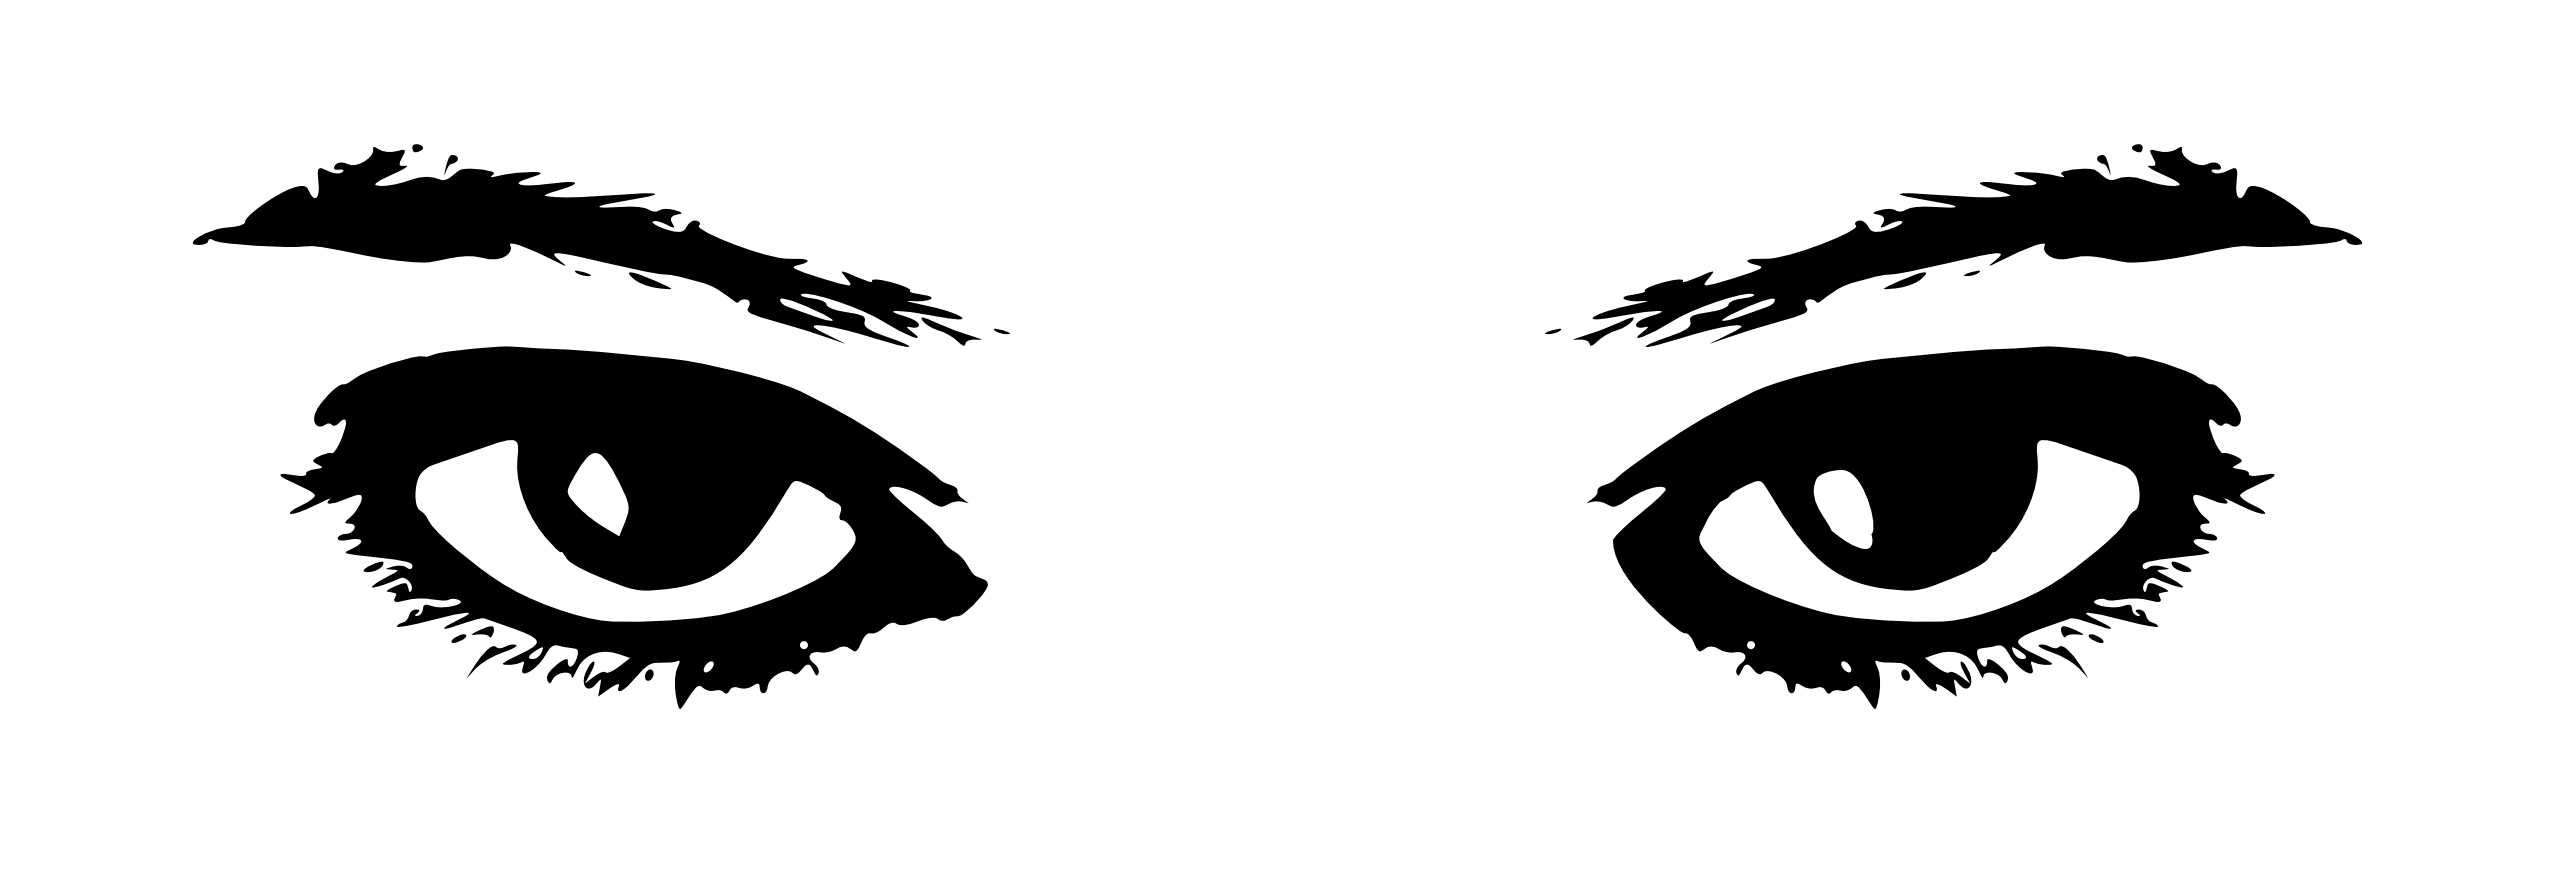 picture royalty free Two hd wallpaper gallery. Eyes clipart black and white